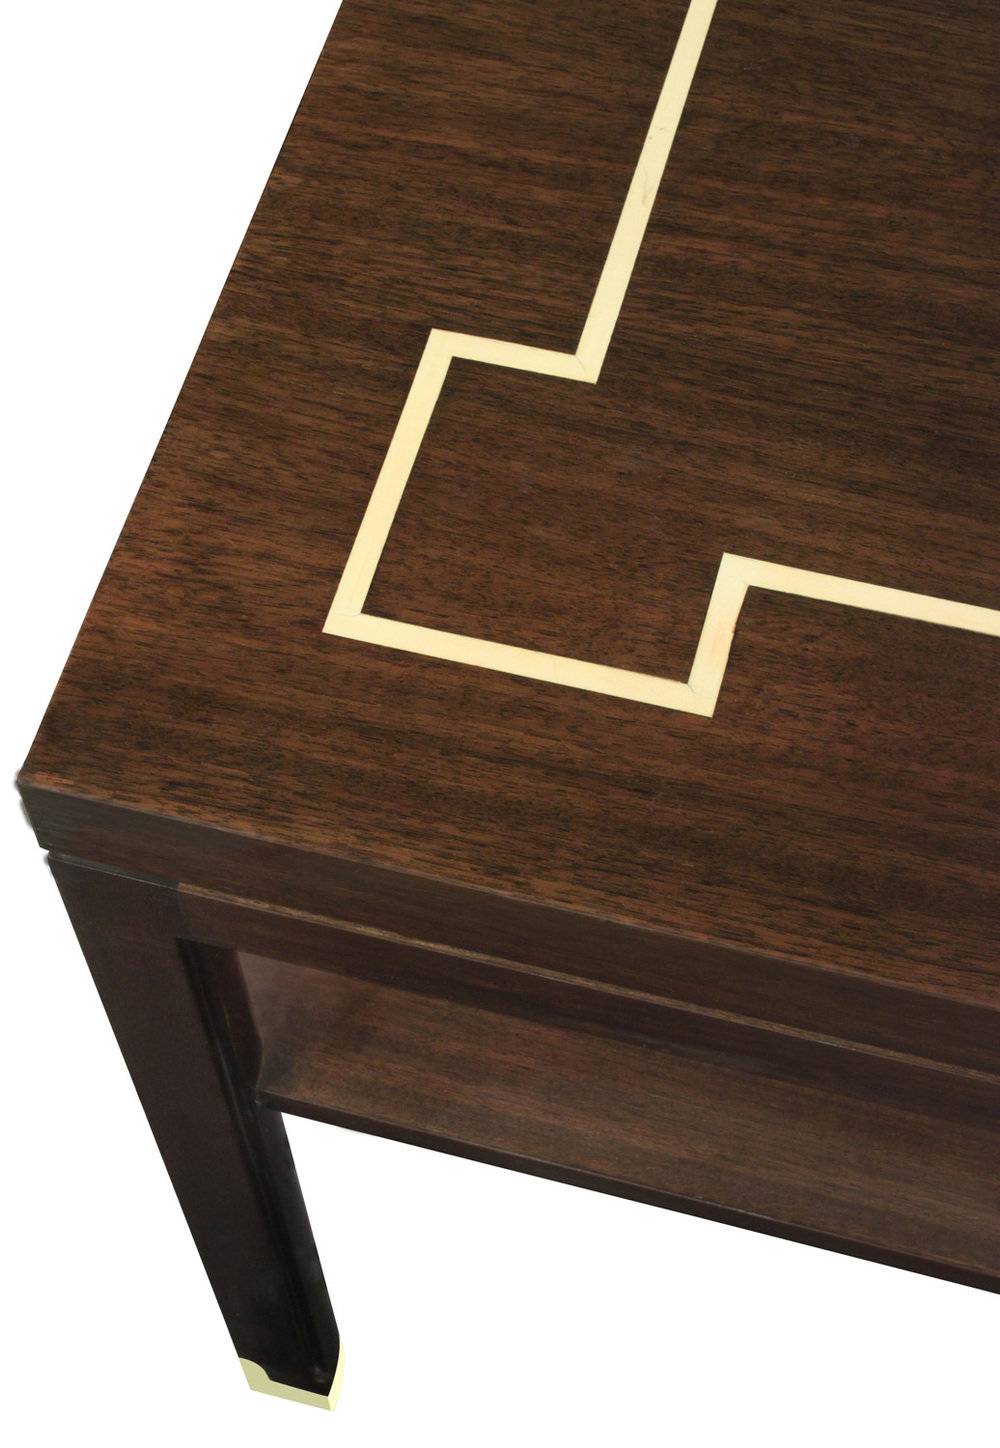 Parzinger 12 lng mahg+iinlays endtable155 detail5 hires.jpg